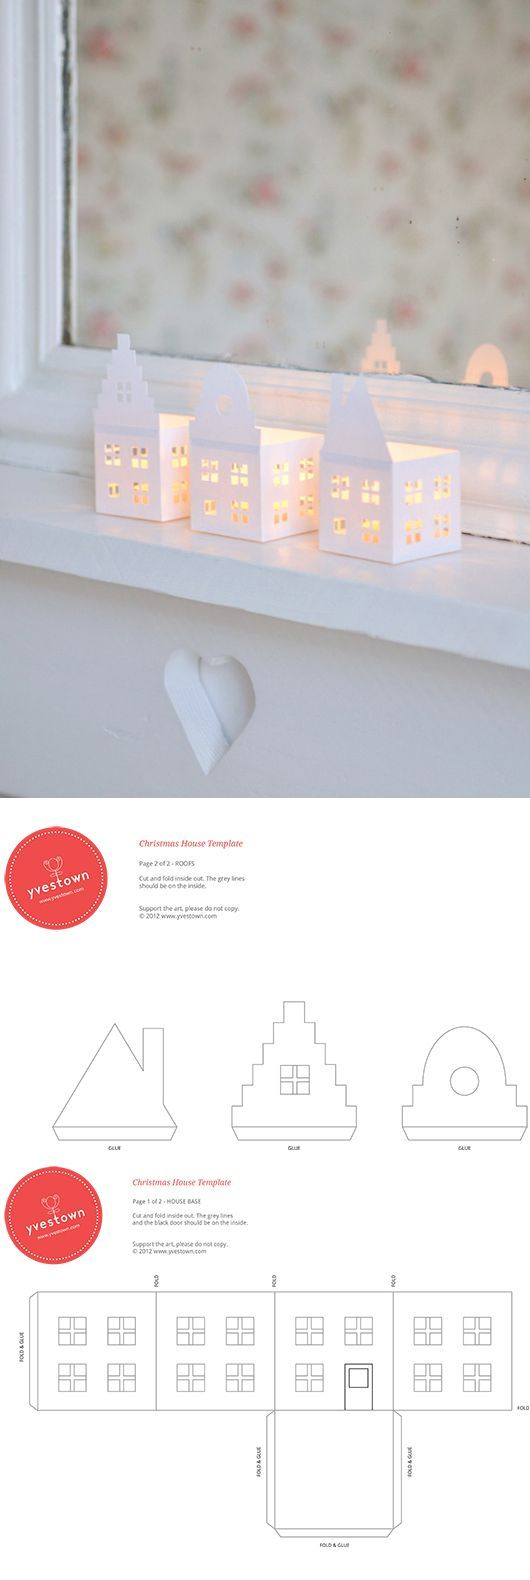 houses candle holder template in 3 styles - free printable download (created by Yvonne of Yvestown via decor8)